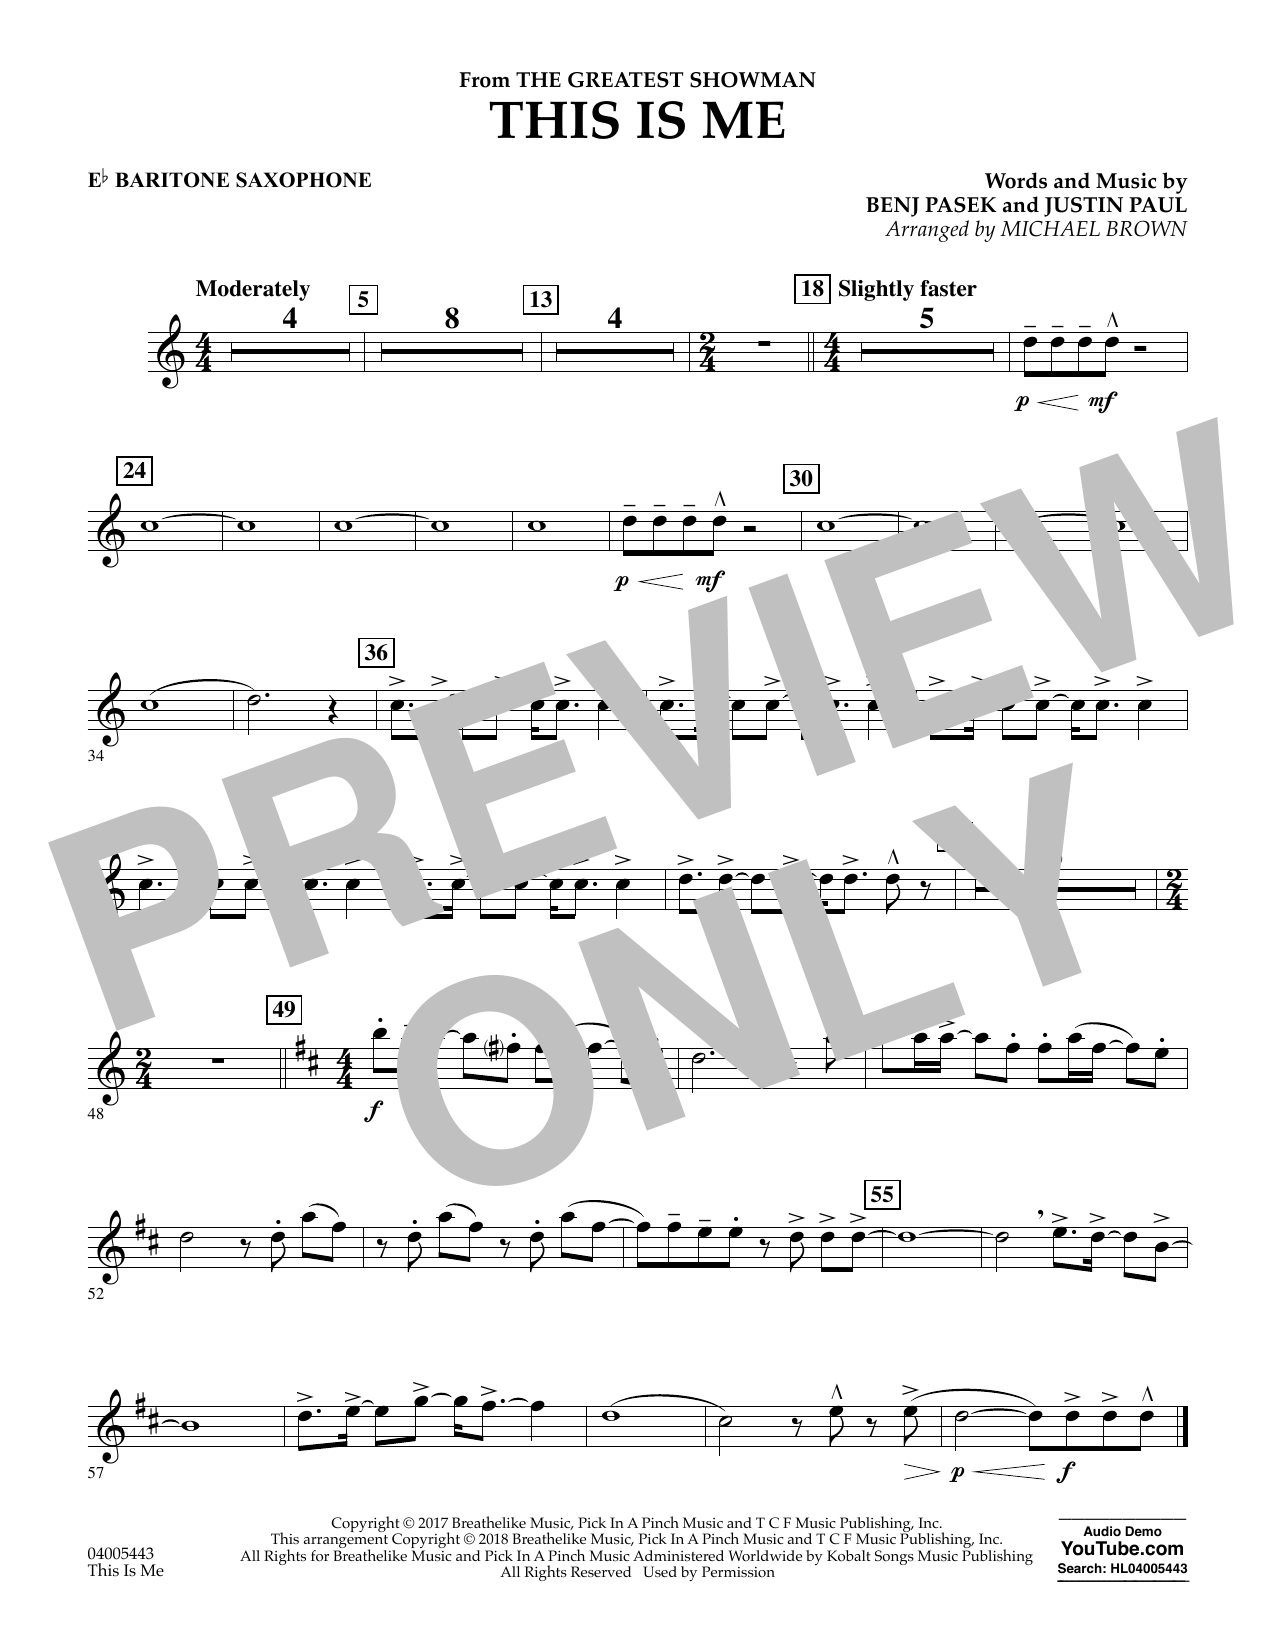 This Is Me (from The Greatest Showman) (arr. Michael Brown) - Eb Baritone Saxophone (Concert Band)